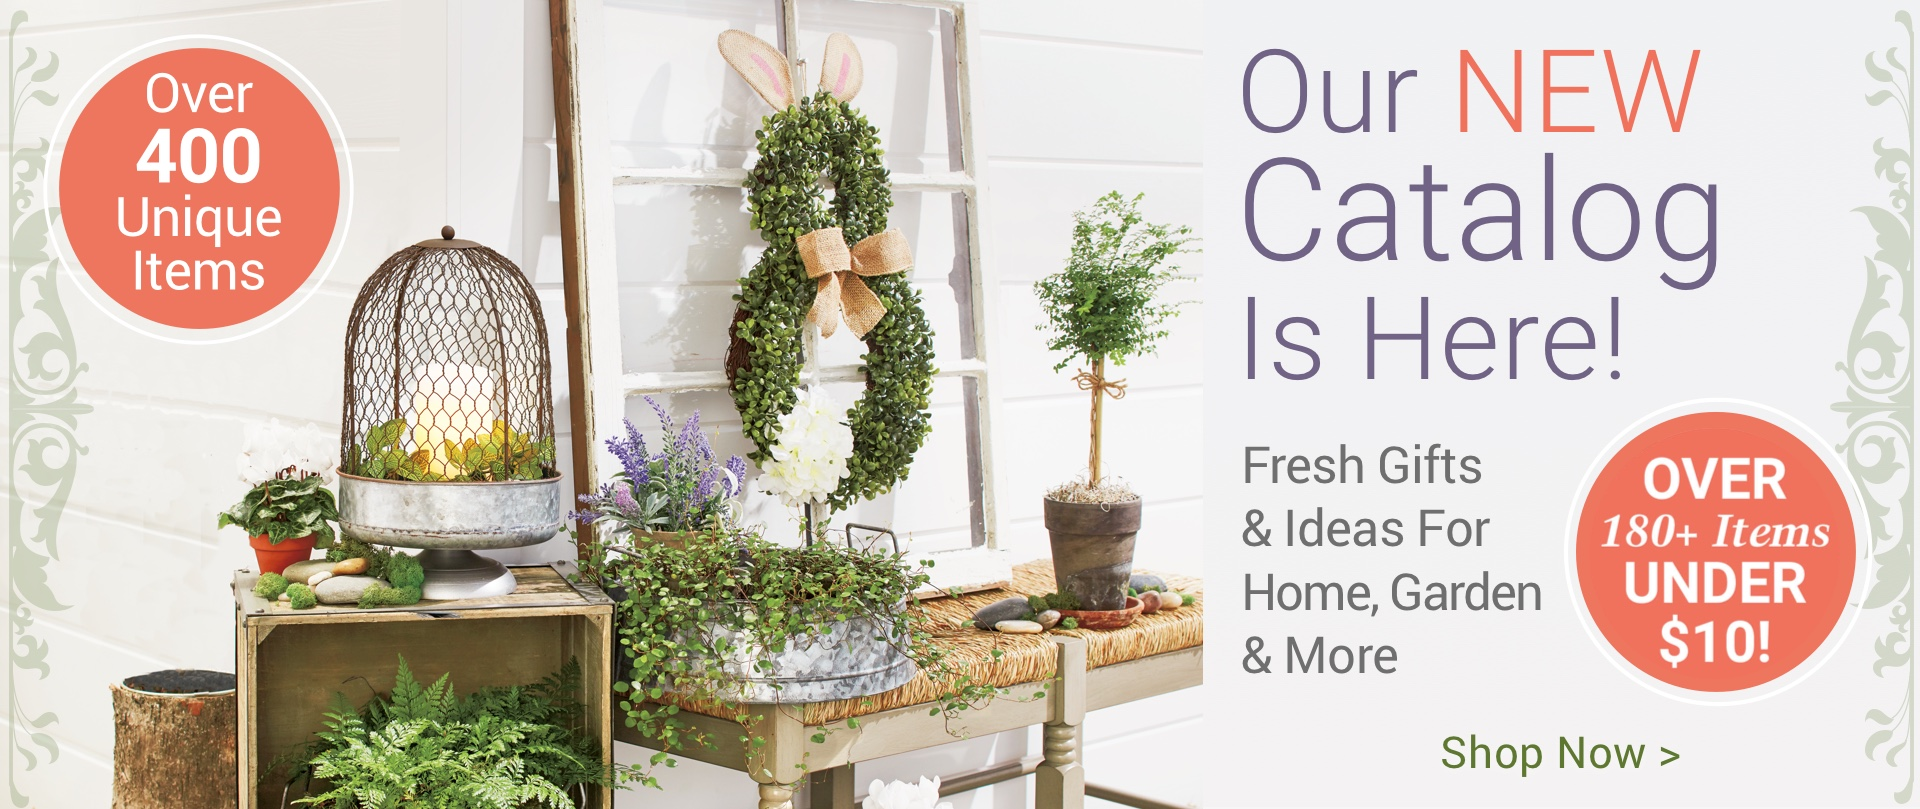 Our New Spring Catalog is Here! Shop Now